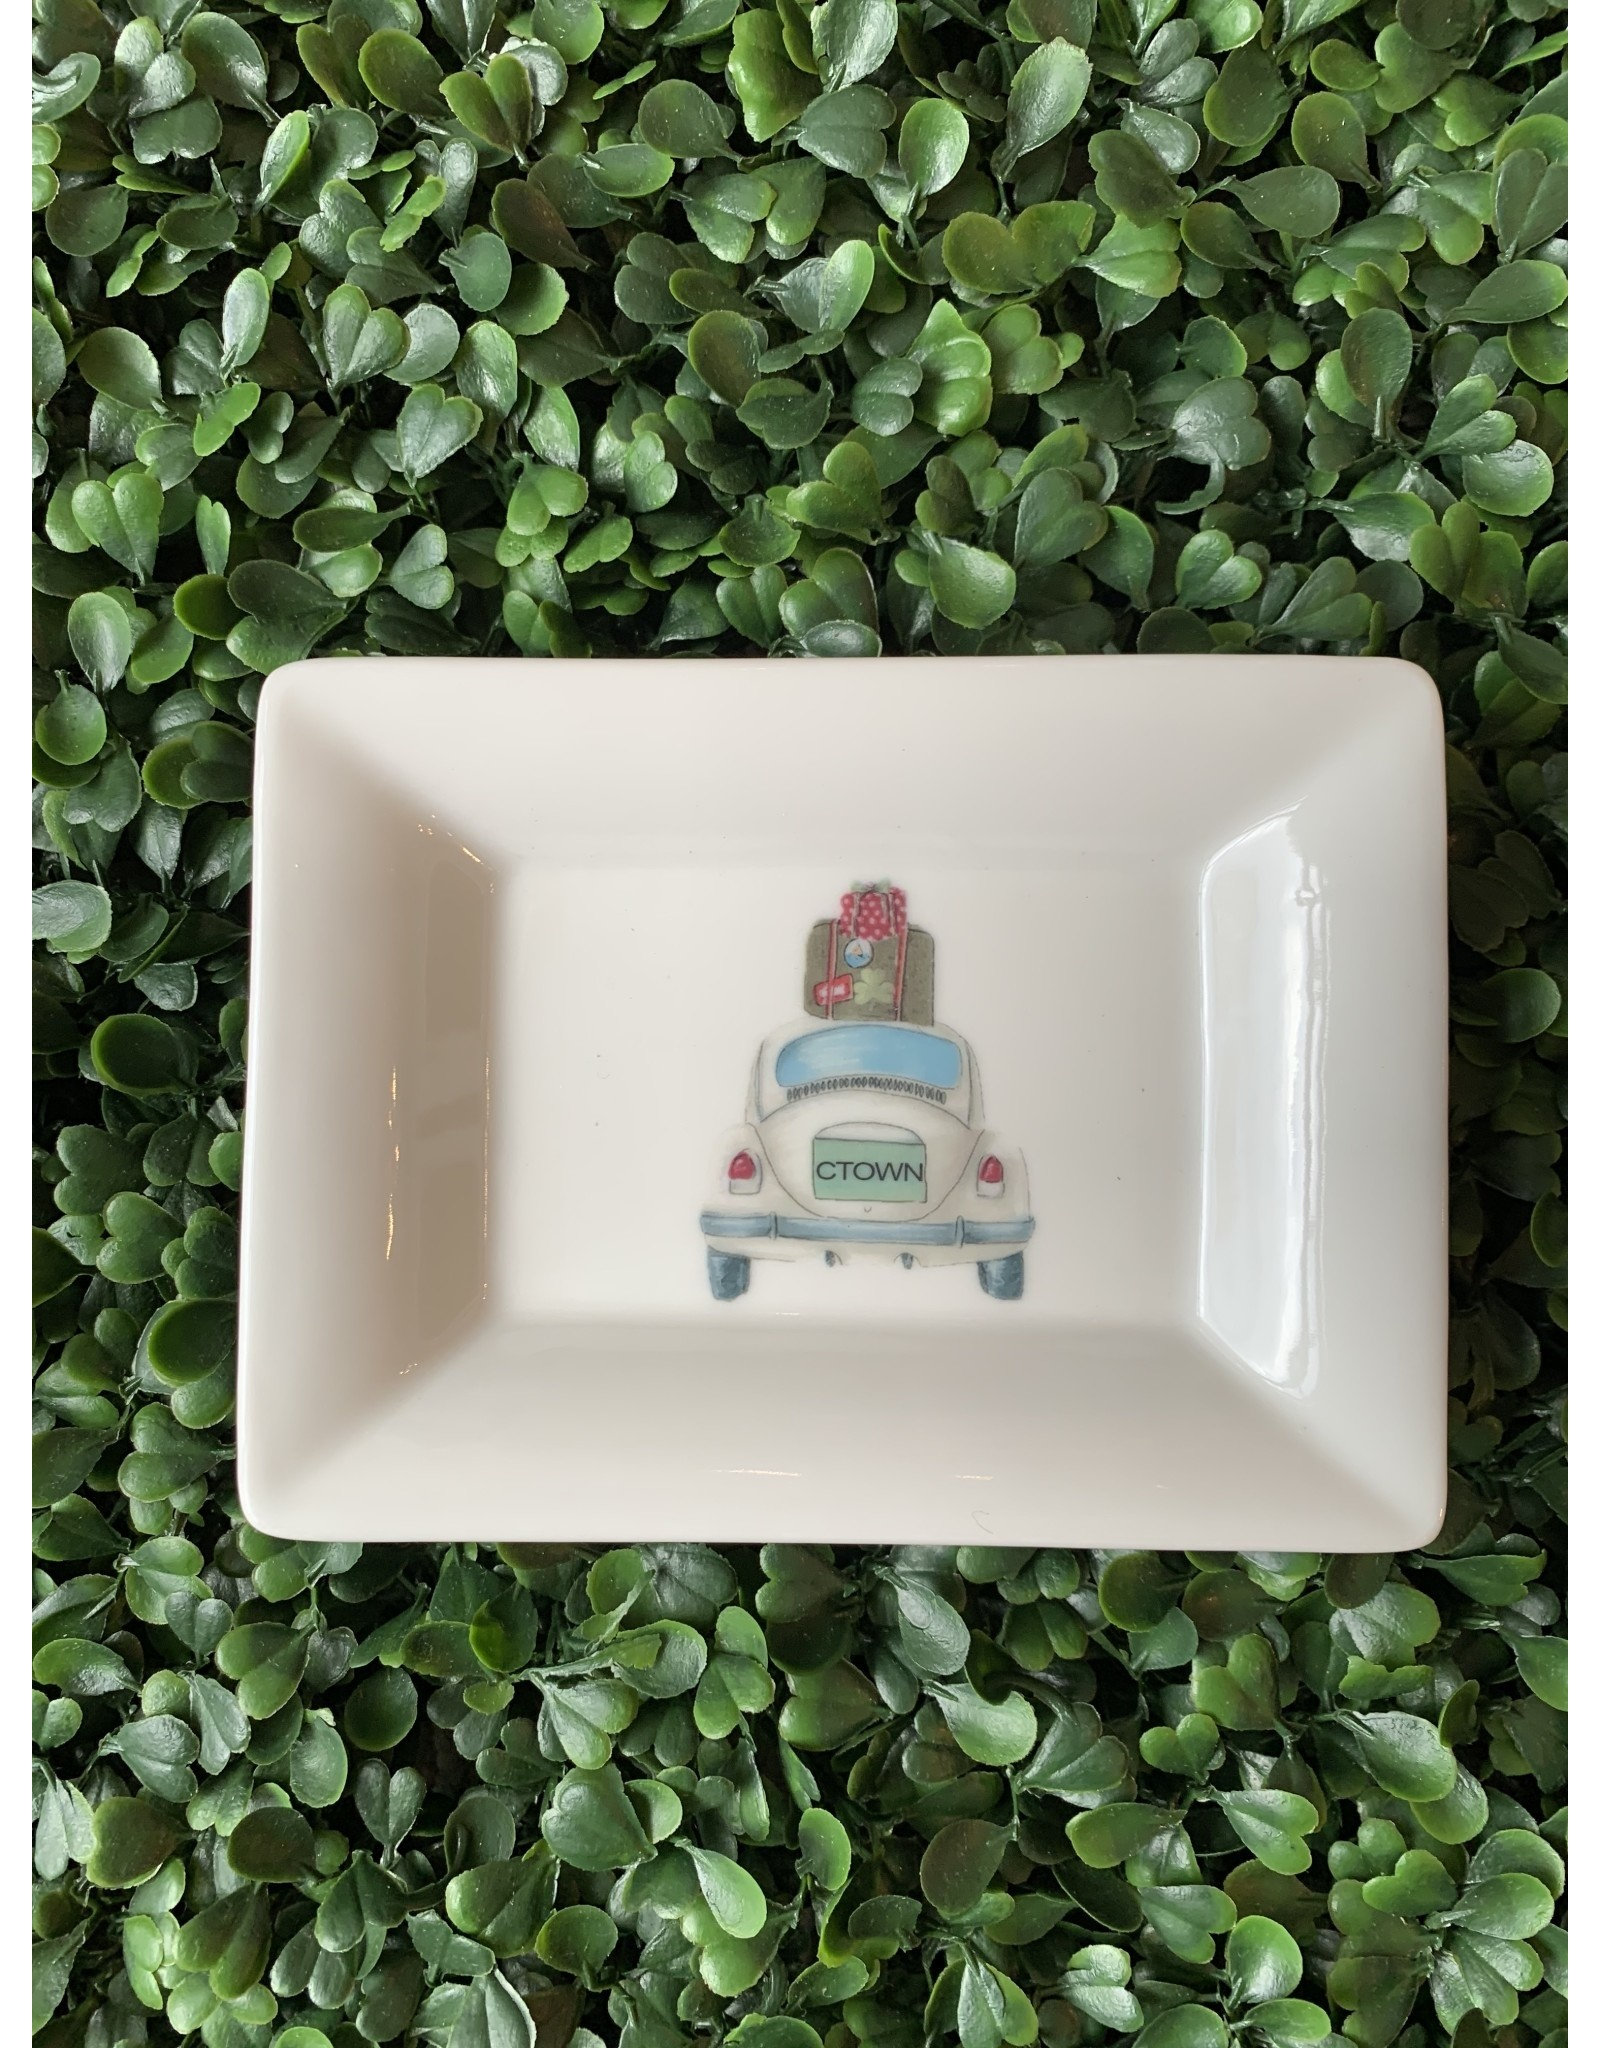 Dishique CTOWN Beatle with Presents Mini Dish